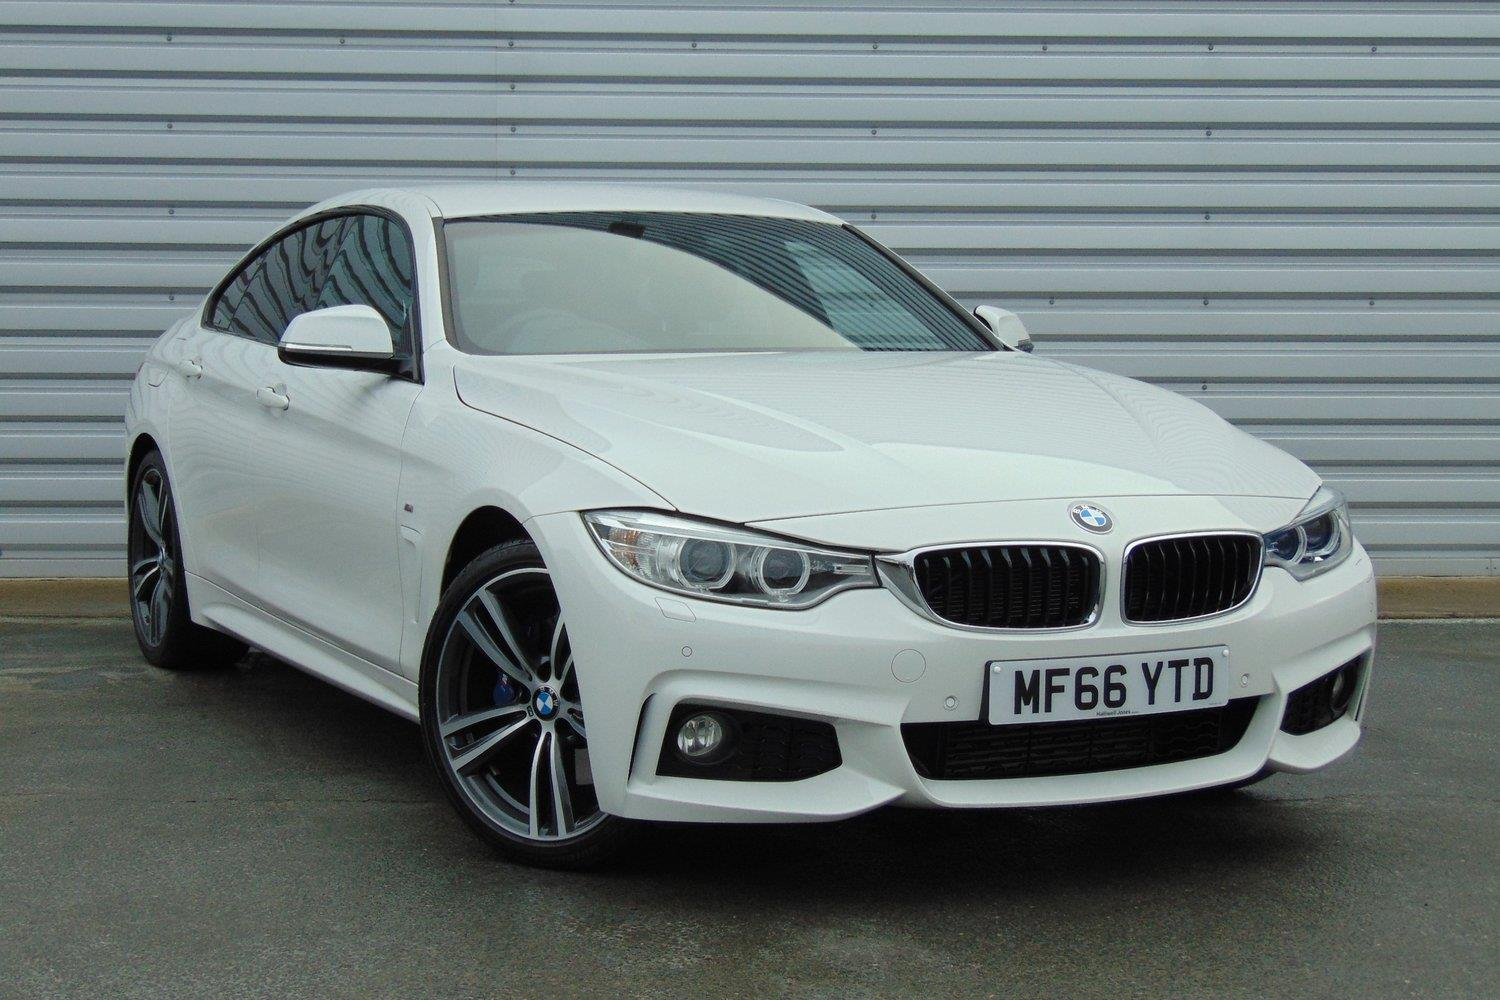 BMW 4 Series Gran Coupé MF66YTD - Image 6